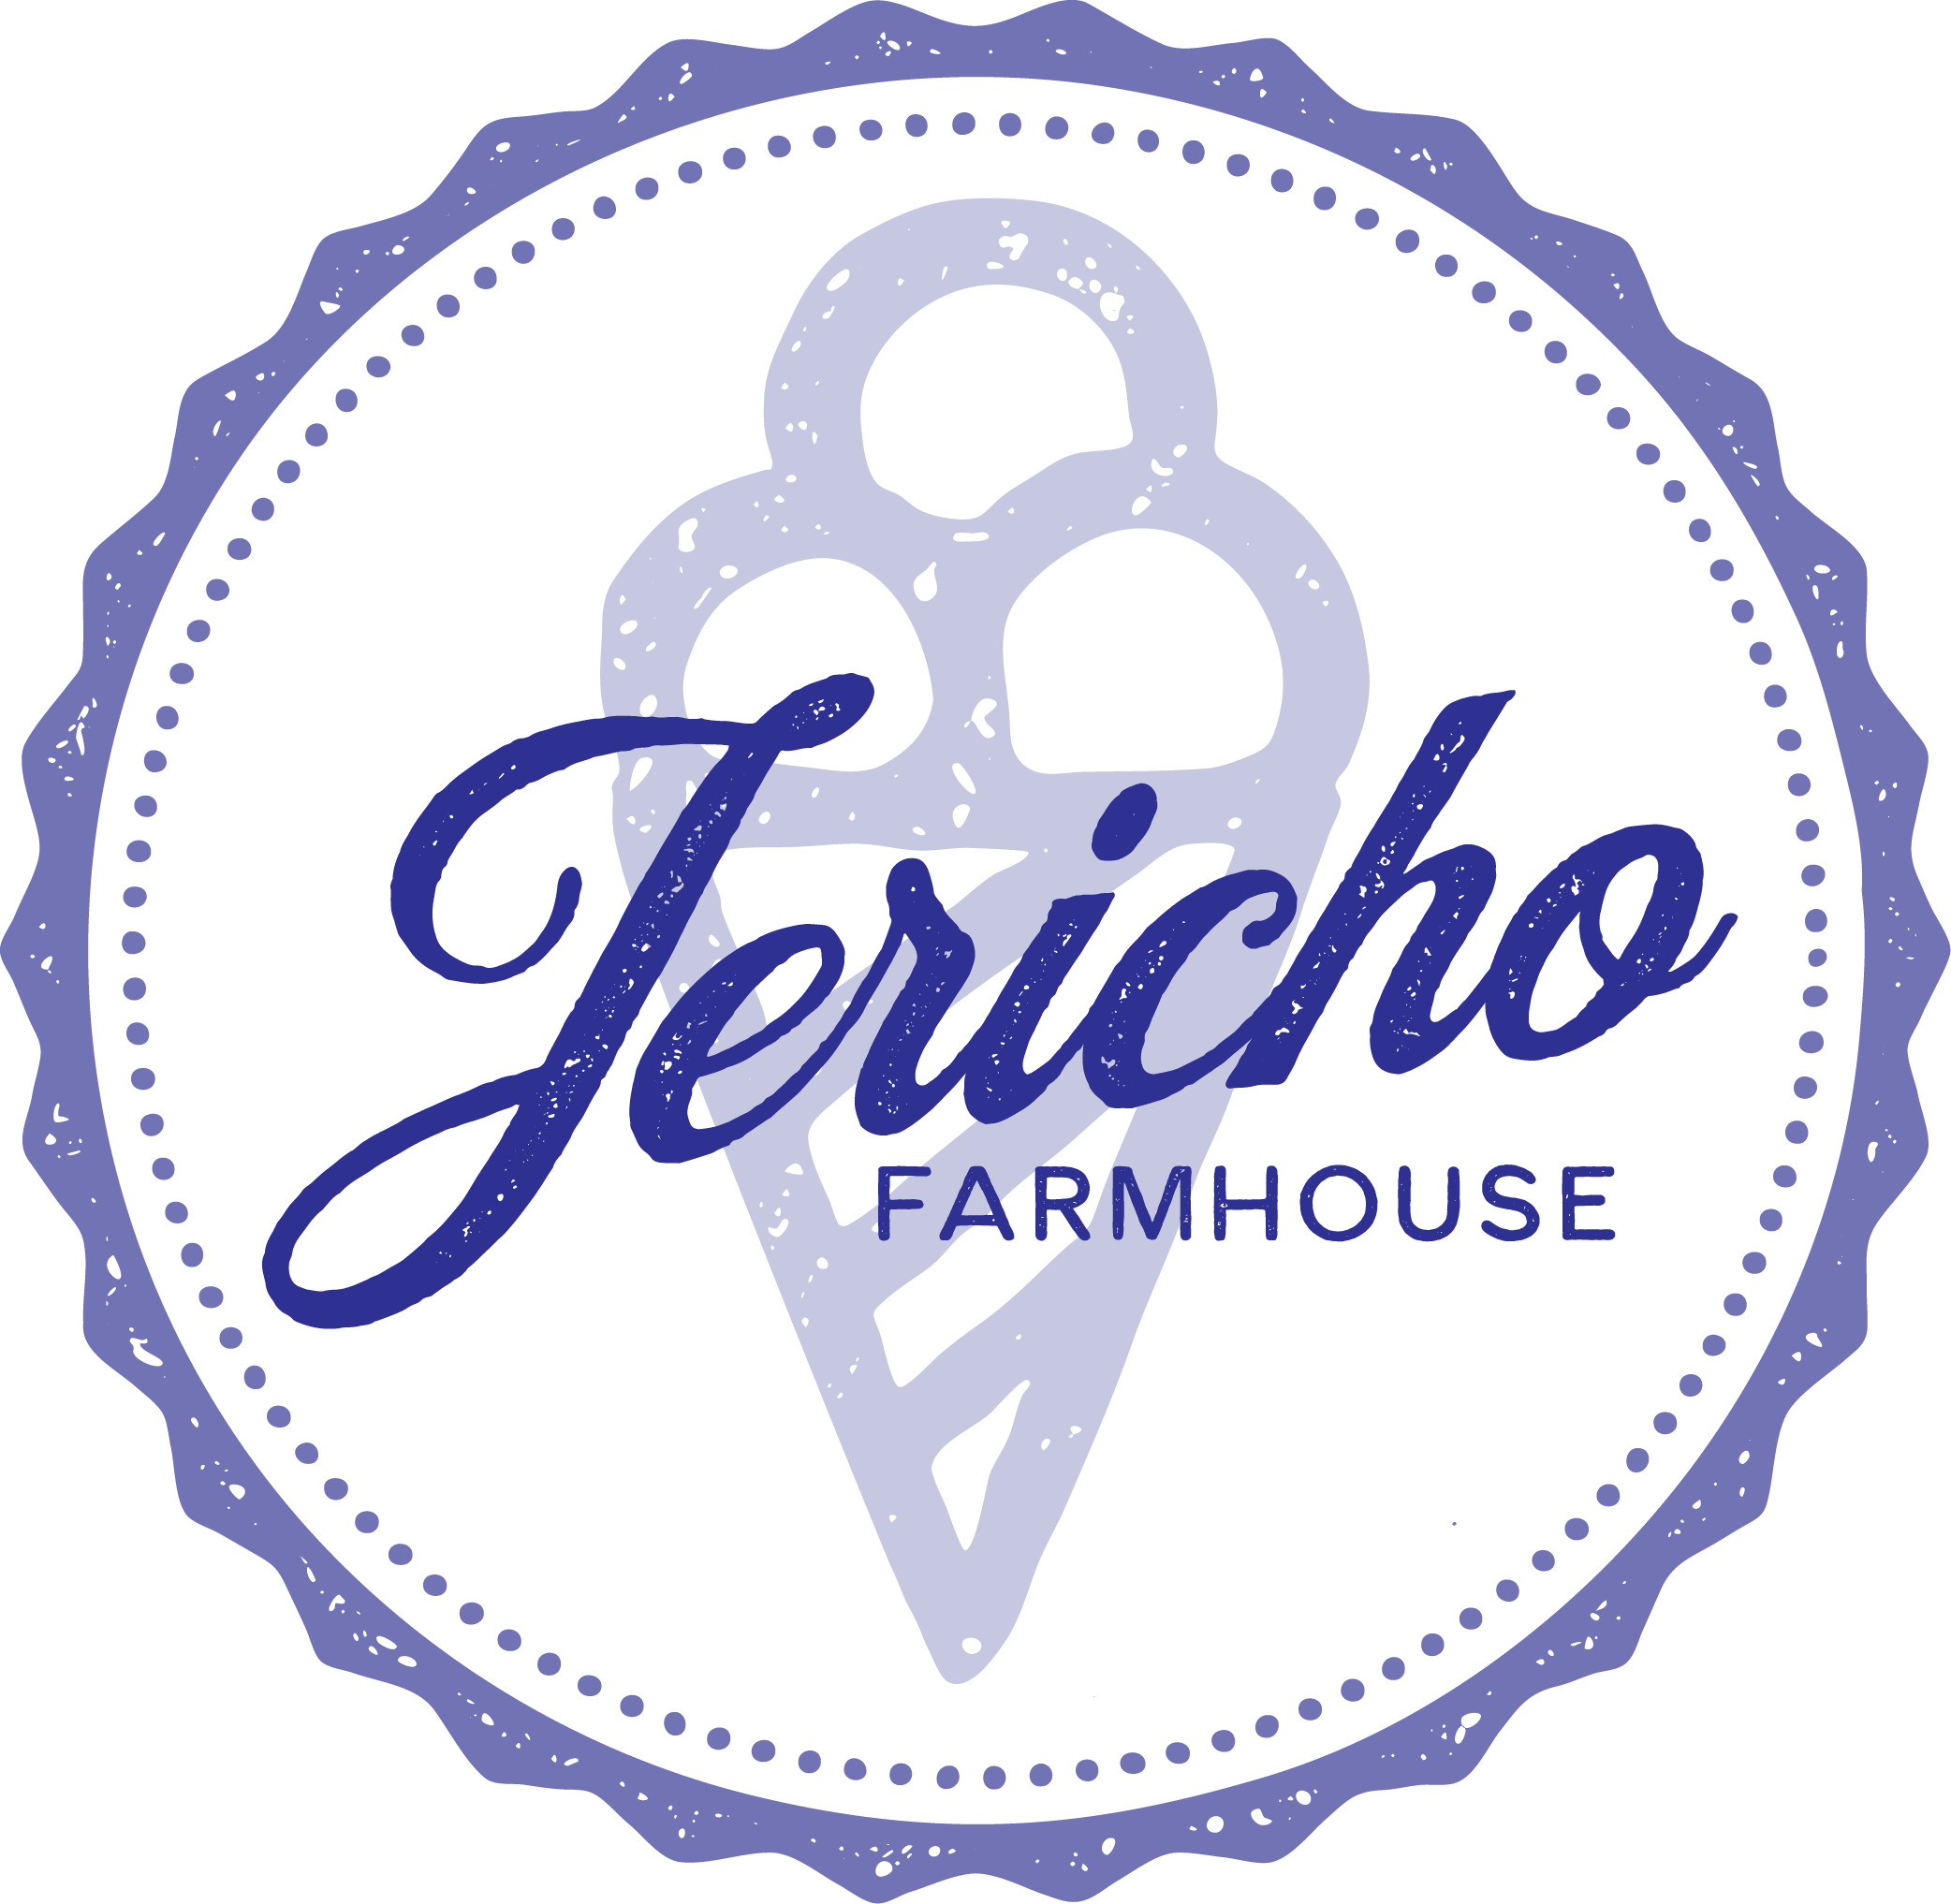 Jericho Farmhouse Logo blue.png